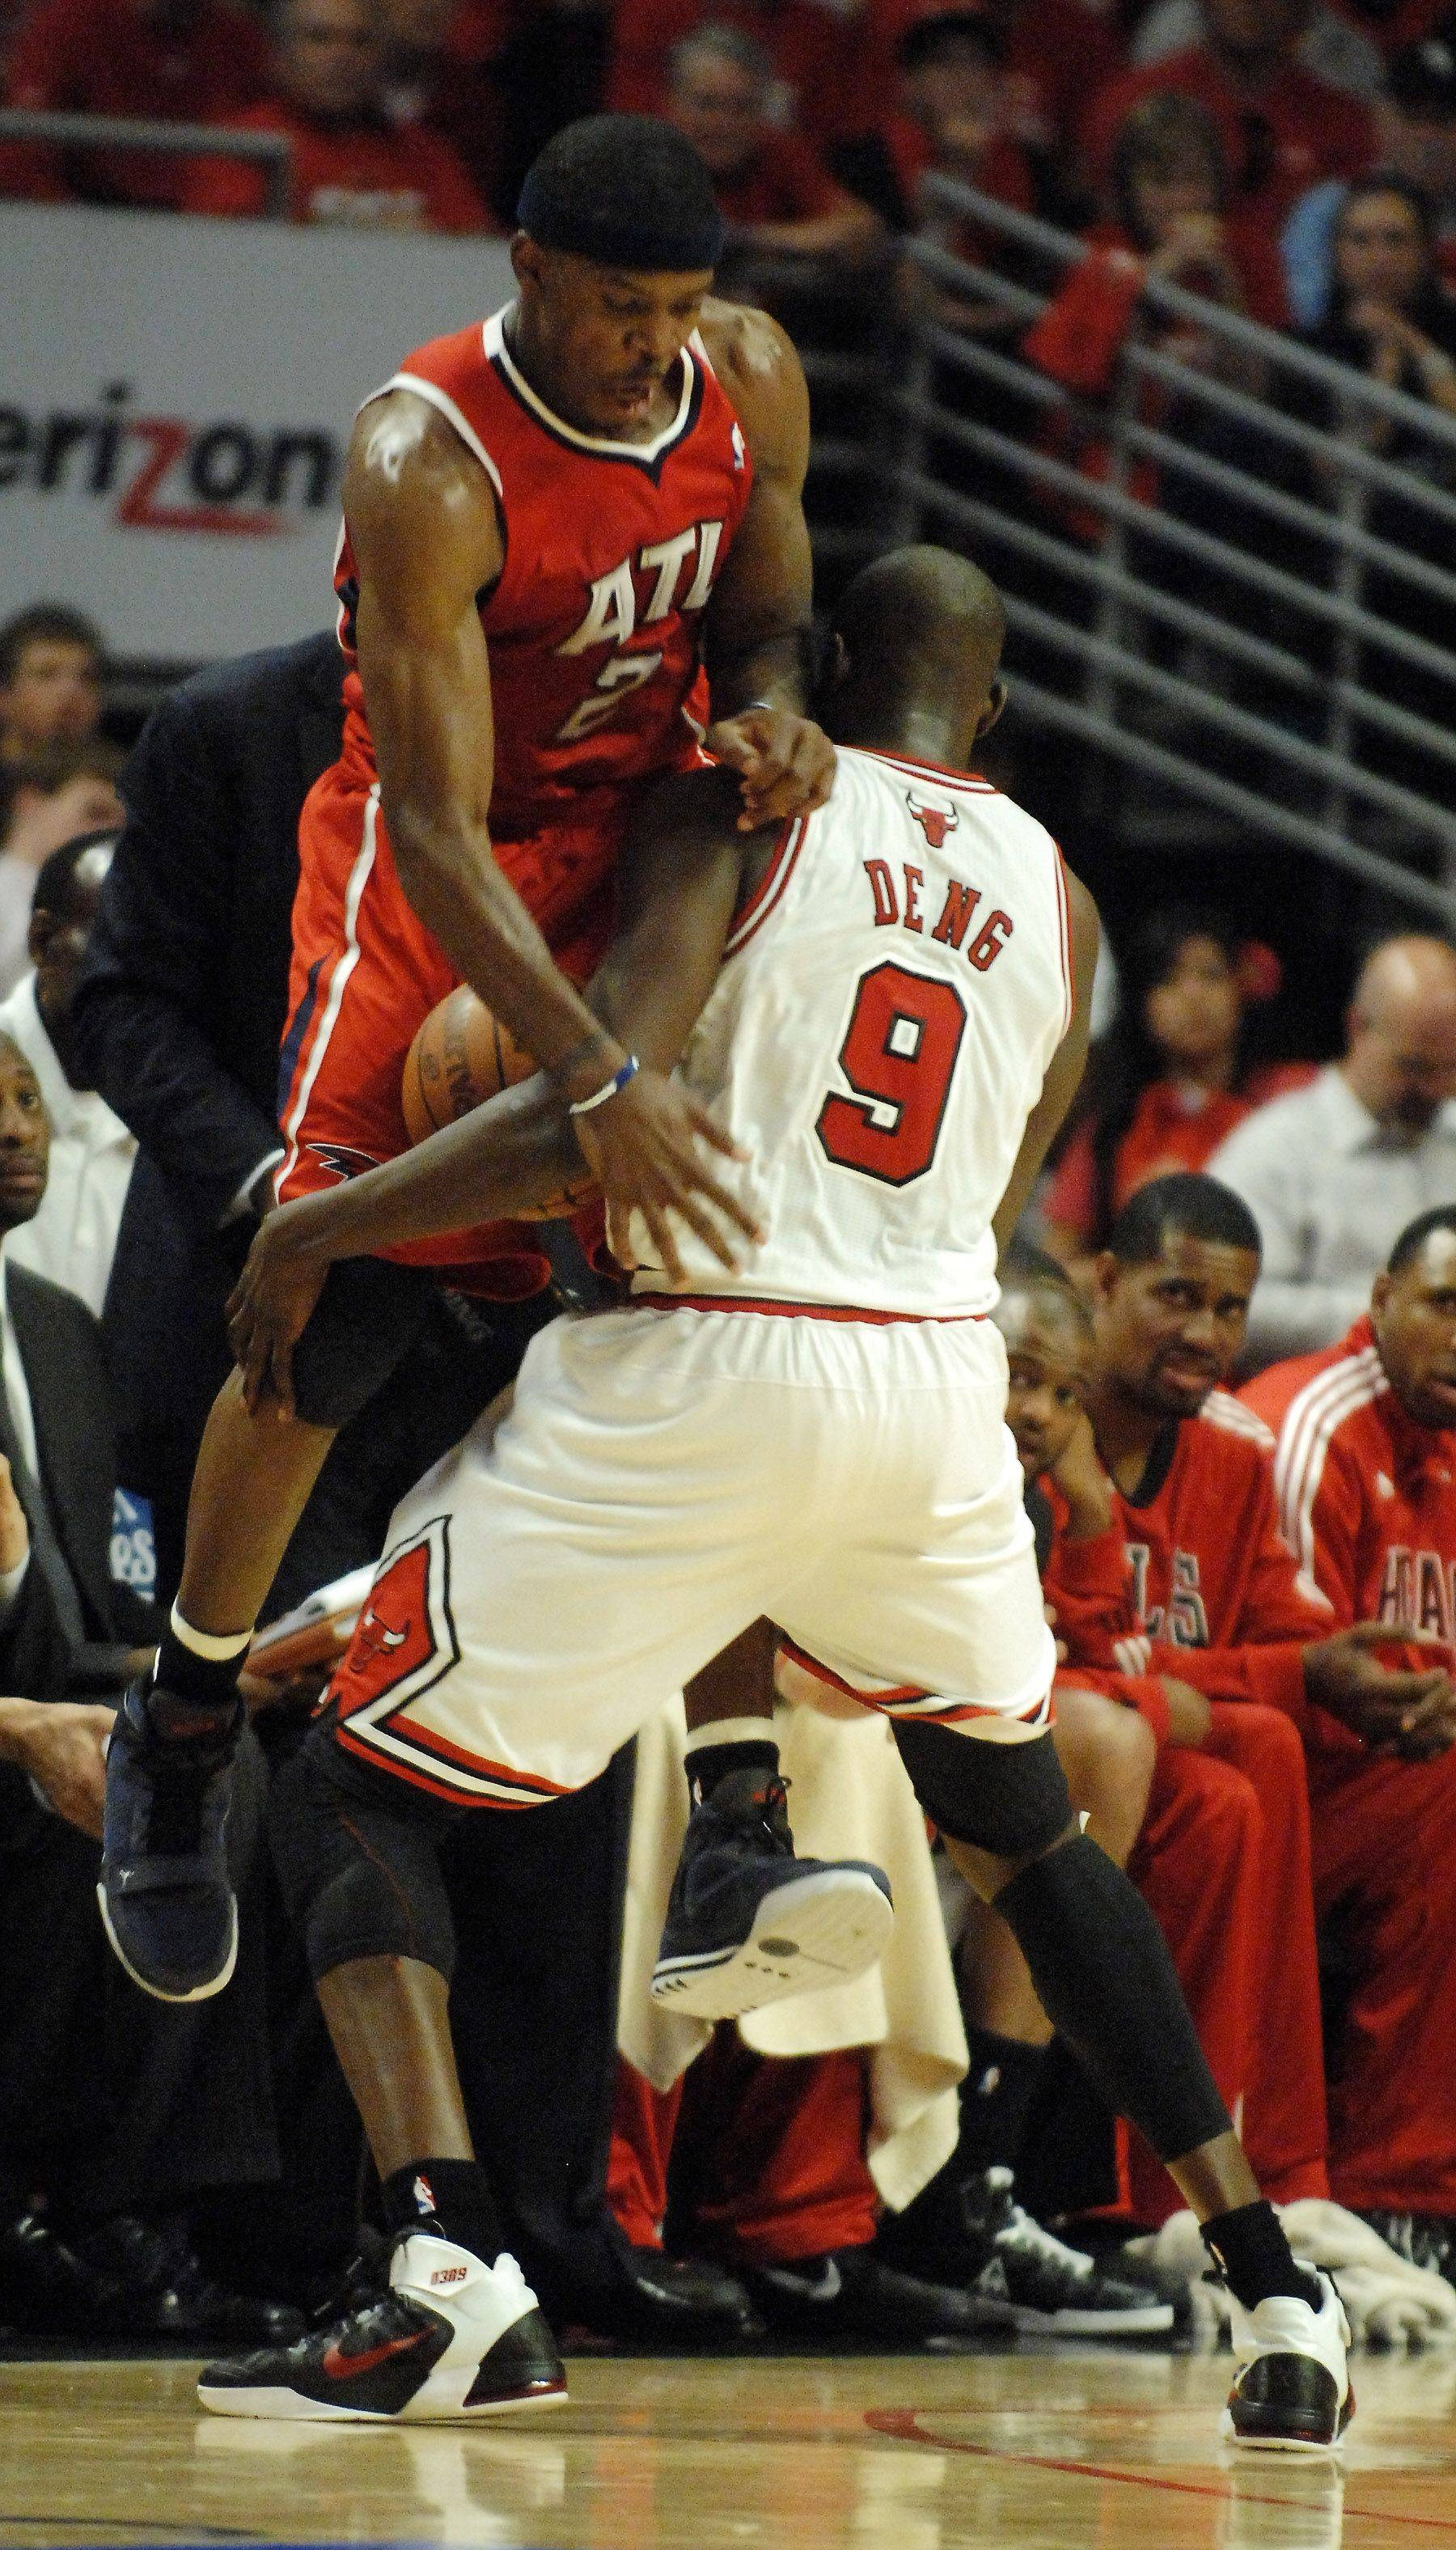 Chicago Bulls forward Luol Deng strips the ball from Atlanta Hawks guard Joe Johnson during game 5 Tuesday.